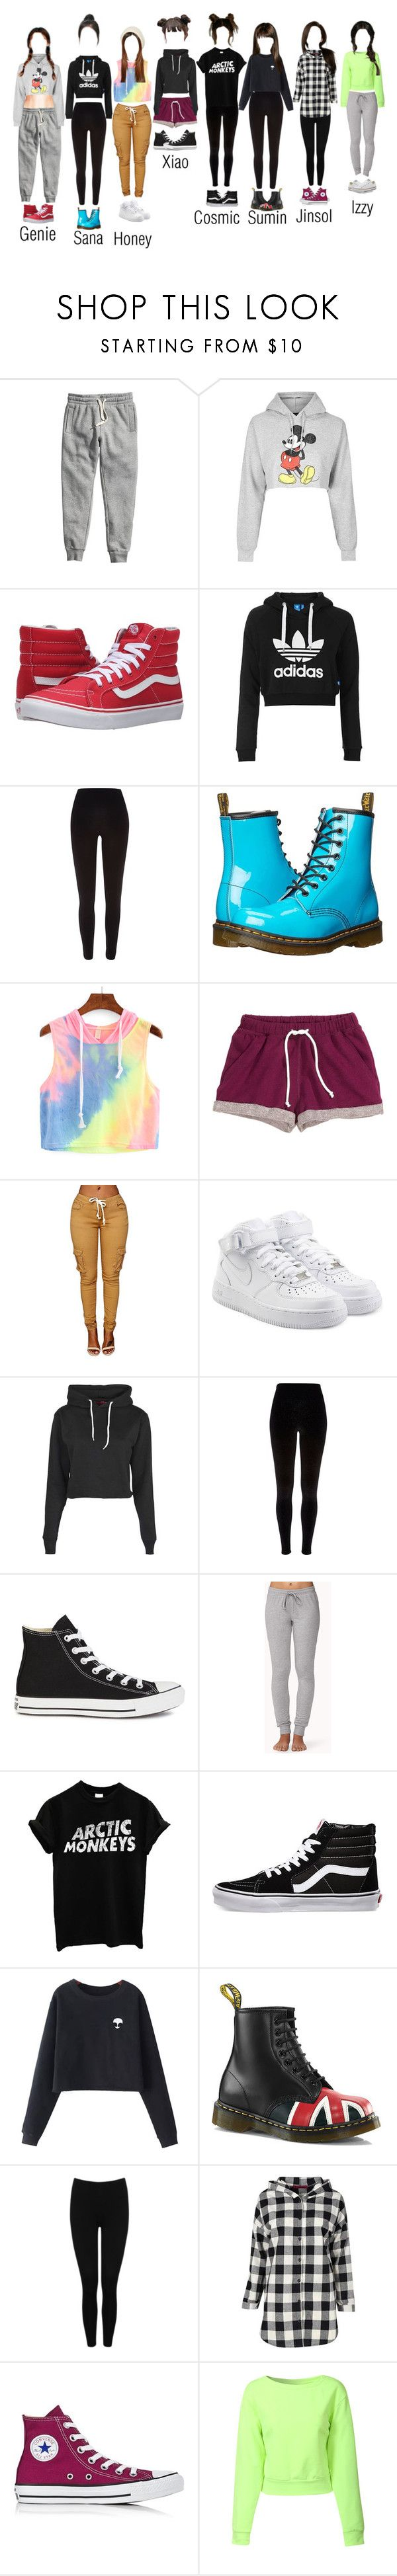 """""""The Dolls - """"Ah Choo"""" Dance Practice"""" by thedolls-official ❤ liked on Polyvore featuring H&M, Topshop, Vans, River Island, Dr. Martens, NIKE, Boohoo, Converse, Forever 21 and Chicnova Fashion"""